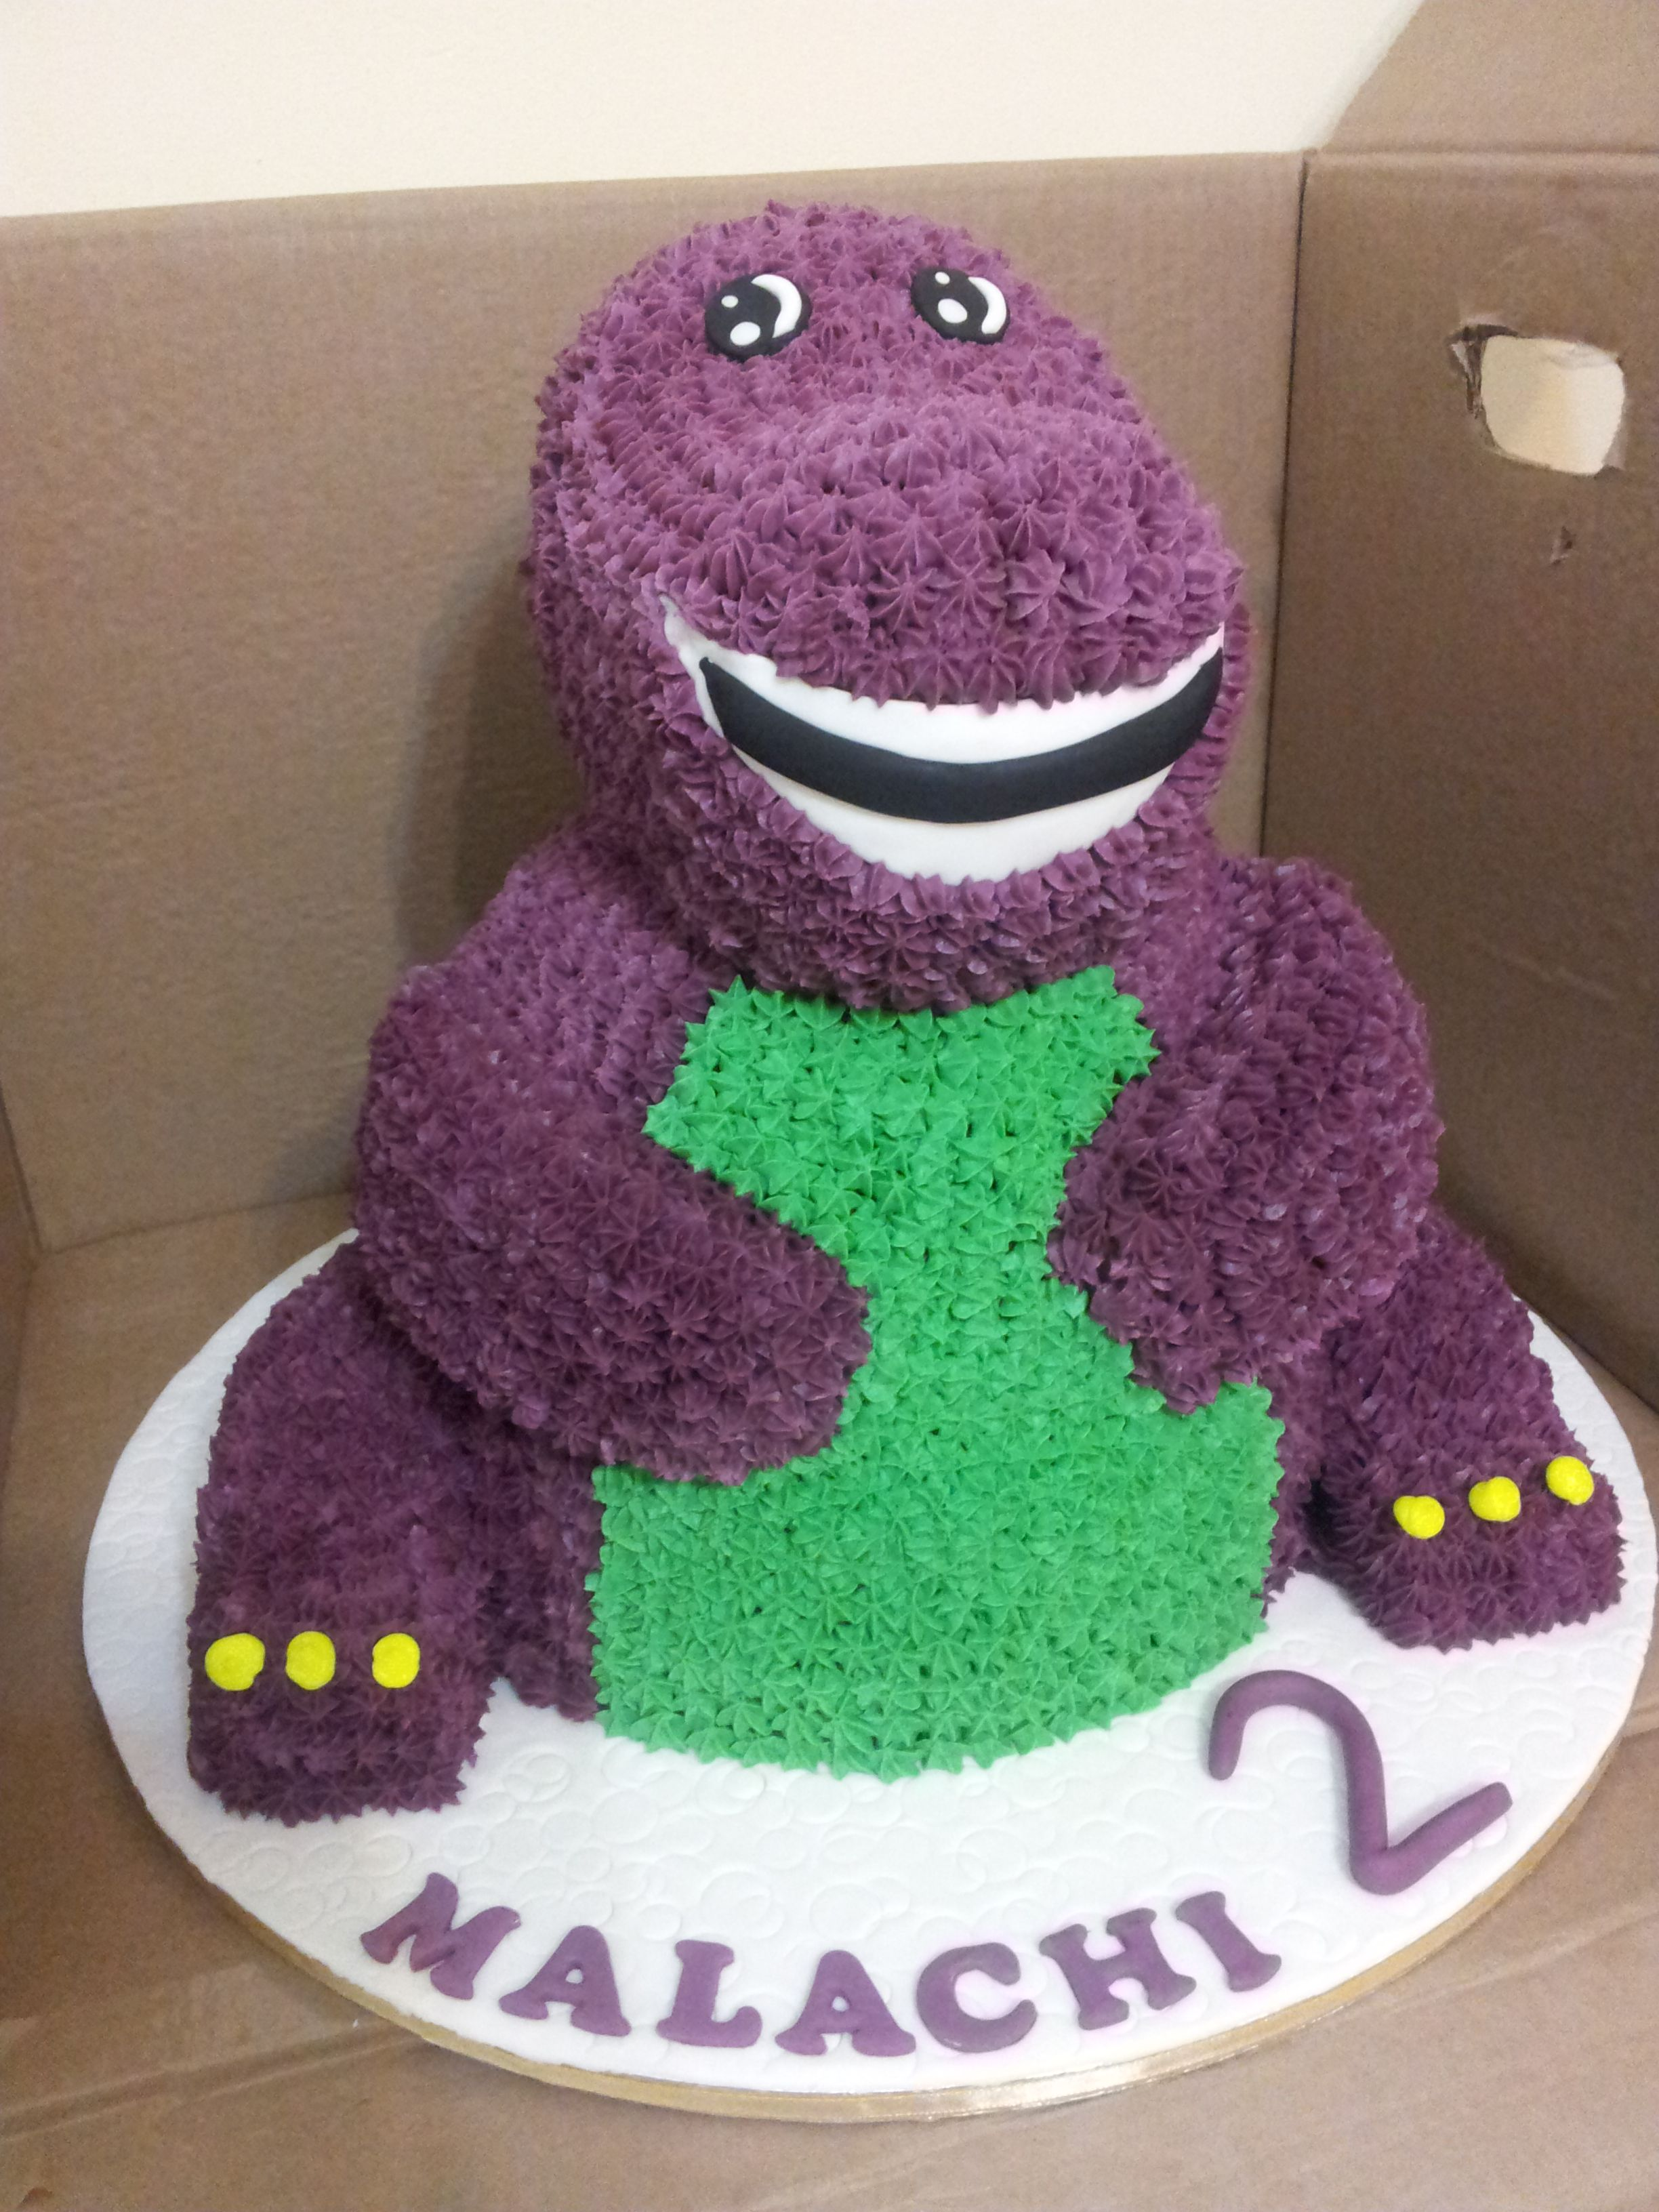 Pleasant Barney Cake For A Two Year Old Boy With Images Barney Personalised Birthday Cards Cominlily Jamesorg